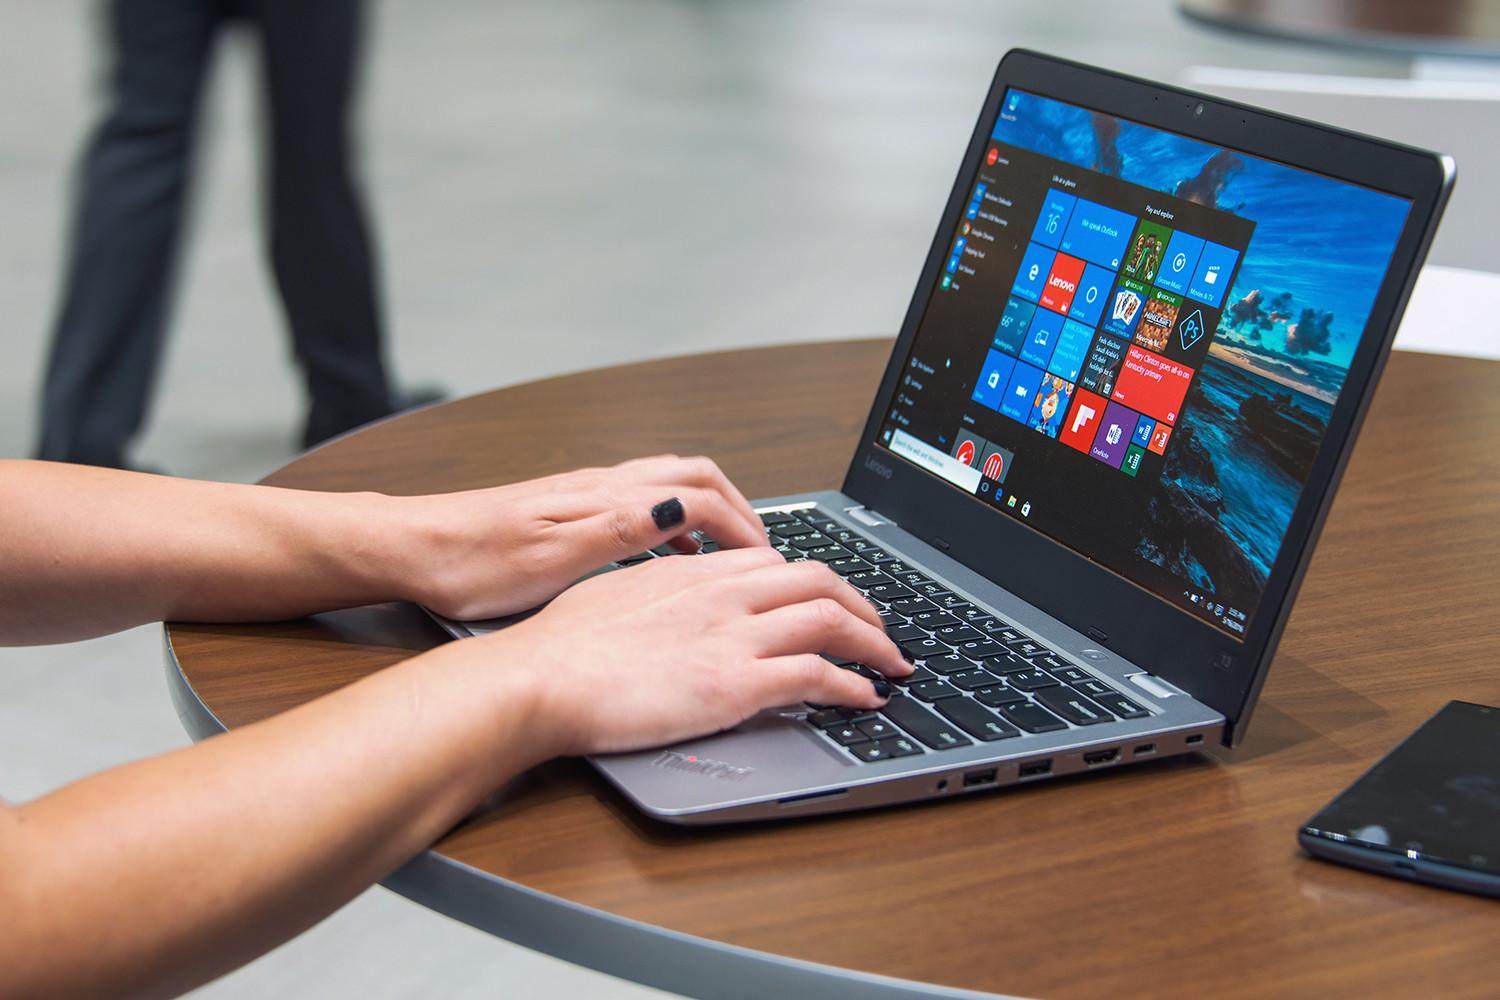 One woman was so annoyed by the Windows 10 update, she sued — and won